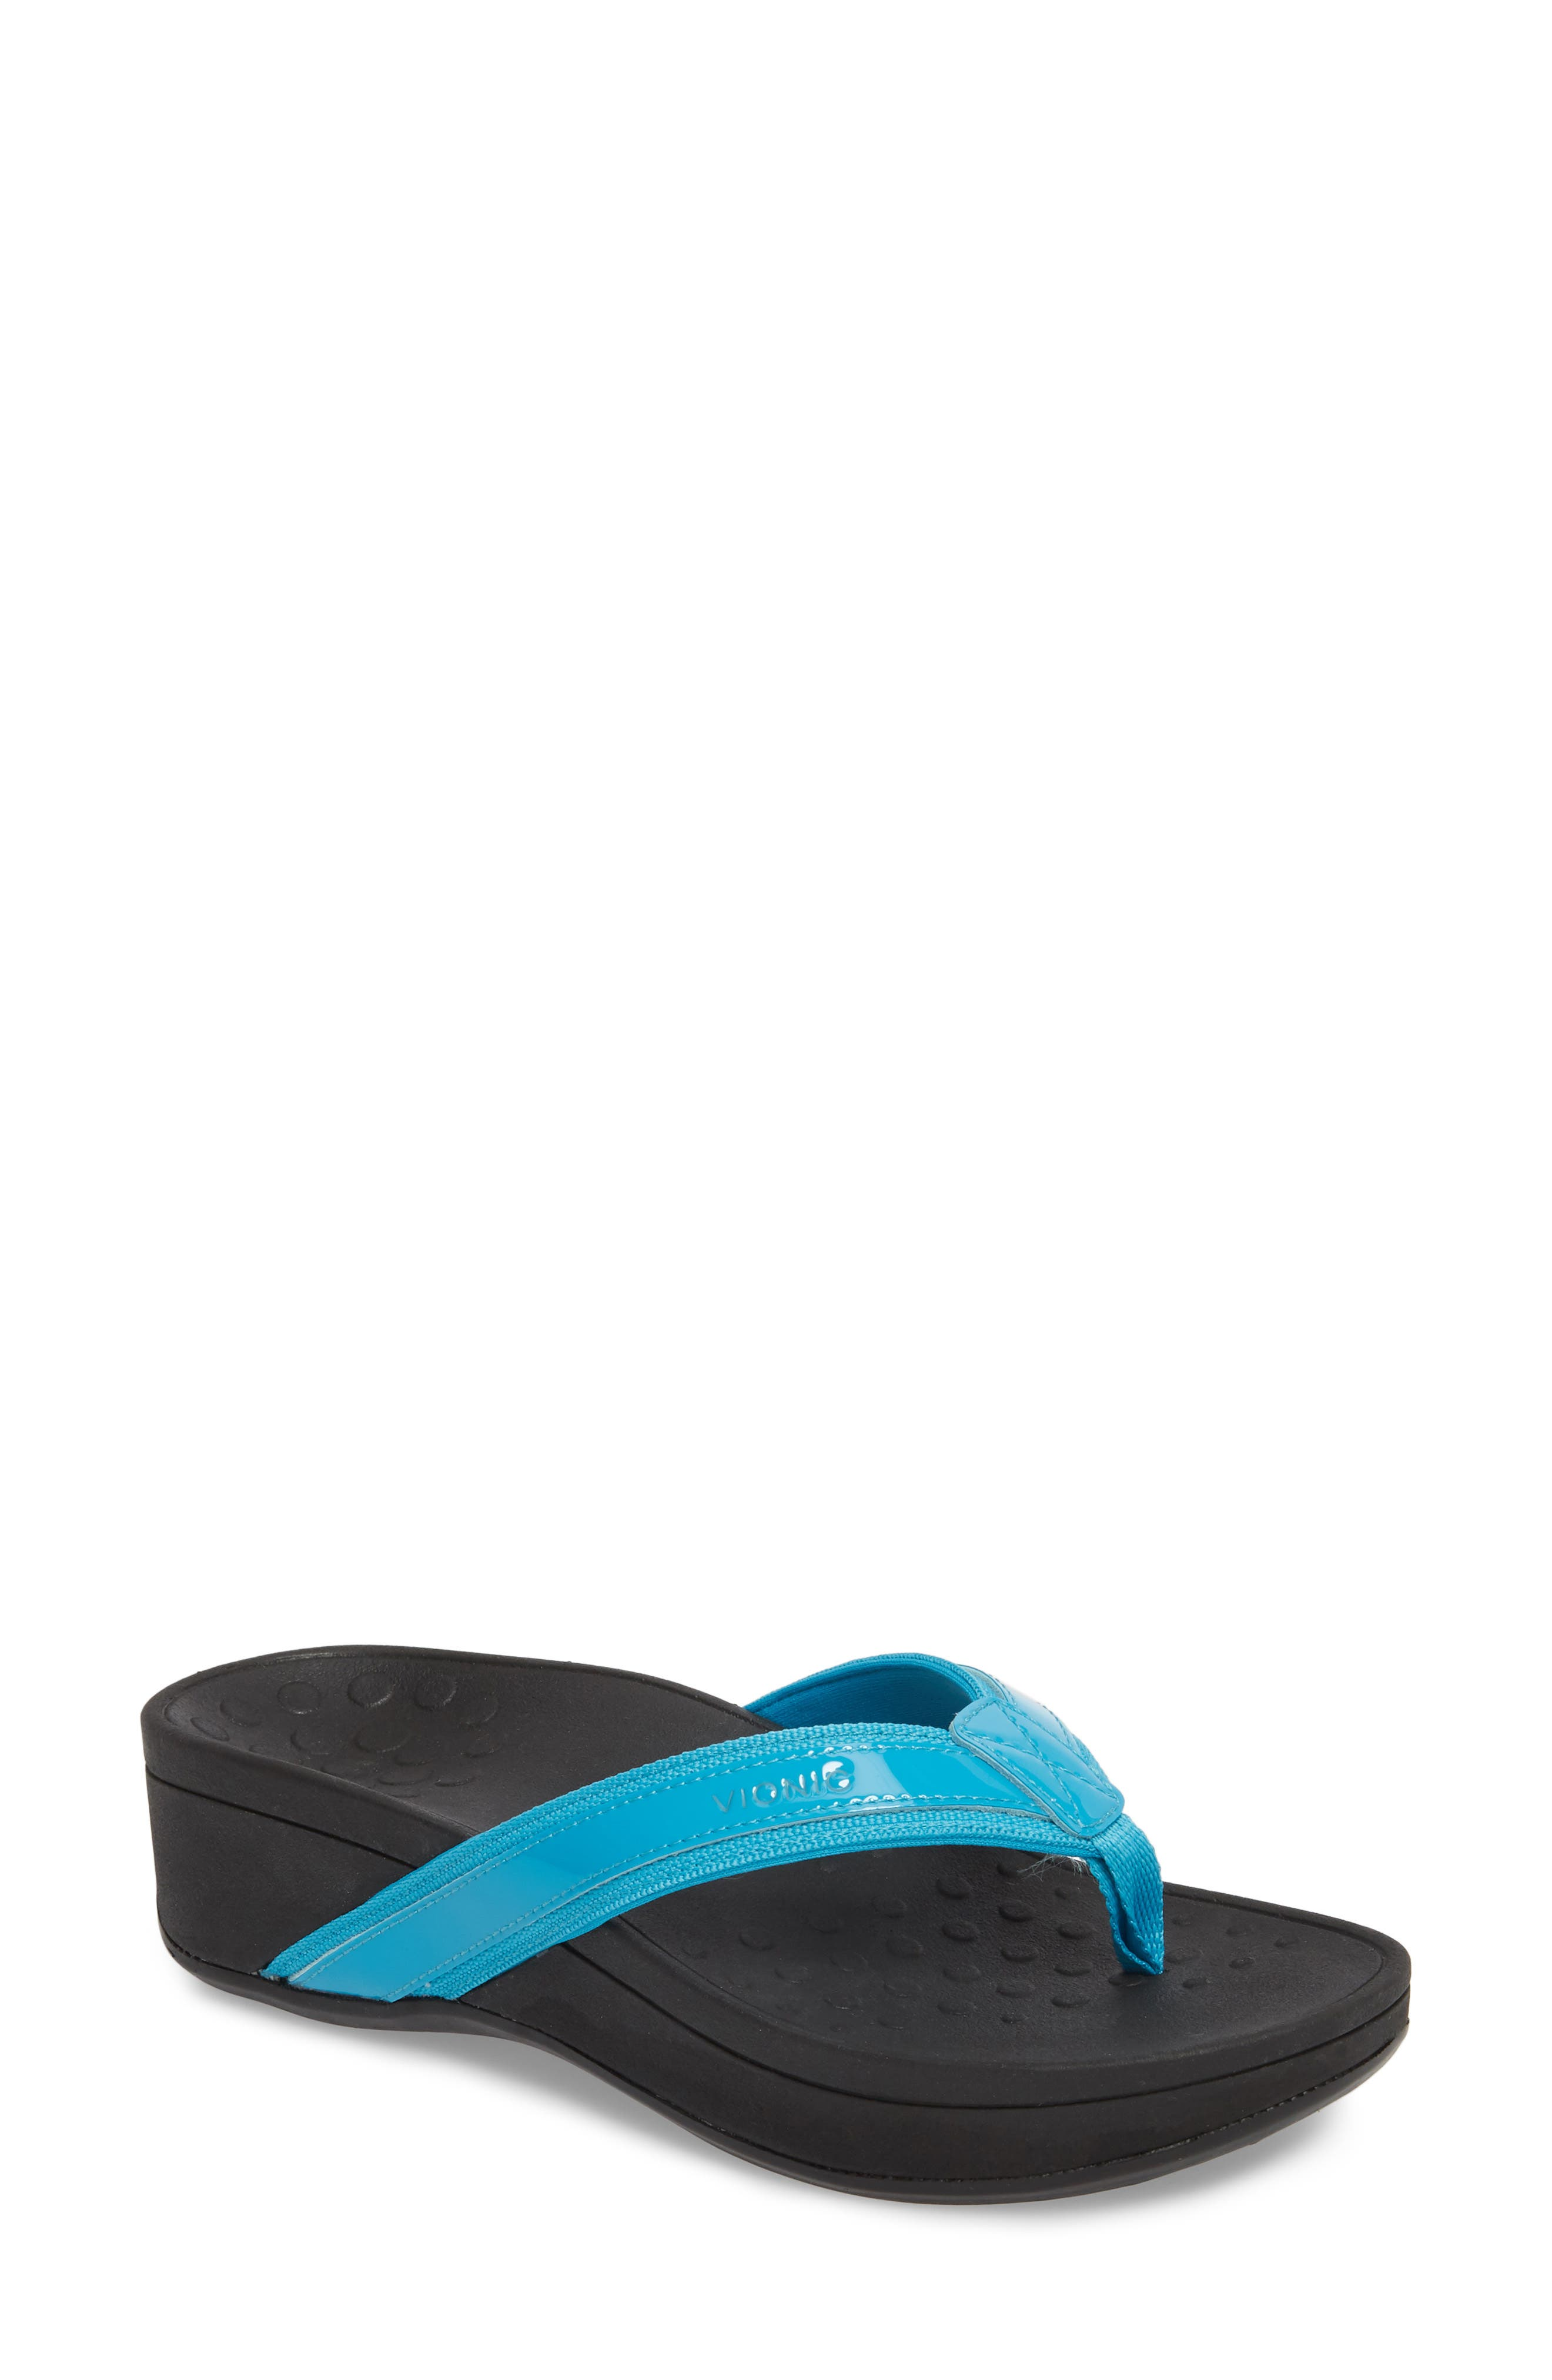 High Tide Wedge Flip Flop,                             Main thumbnail 1, color,                             Turquoise Leather